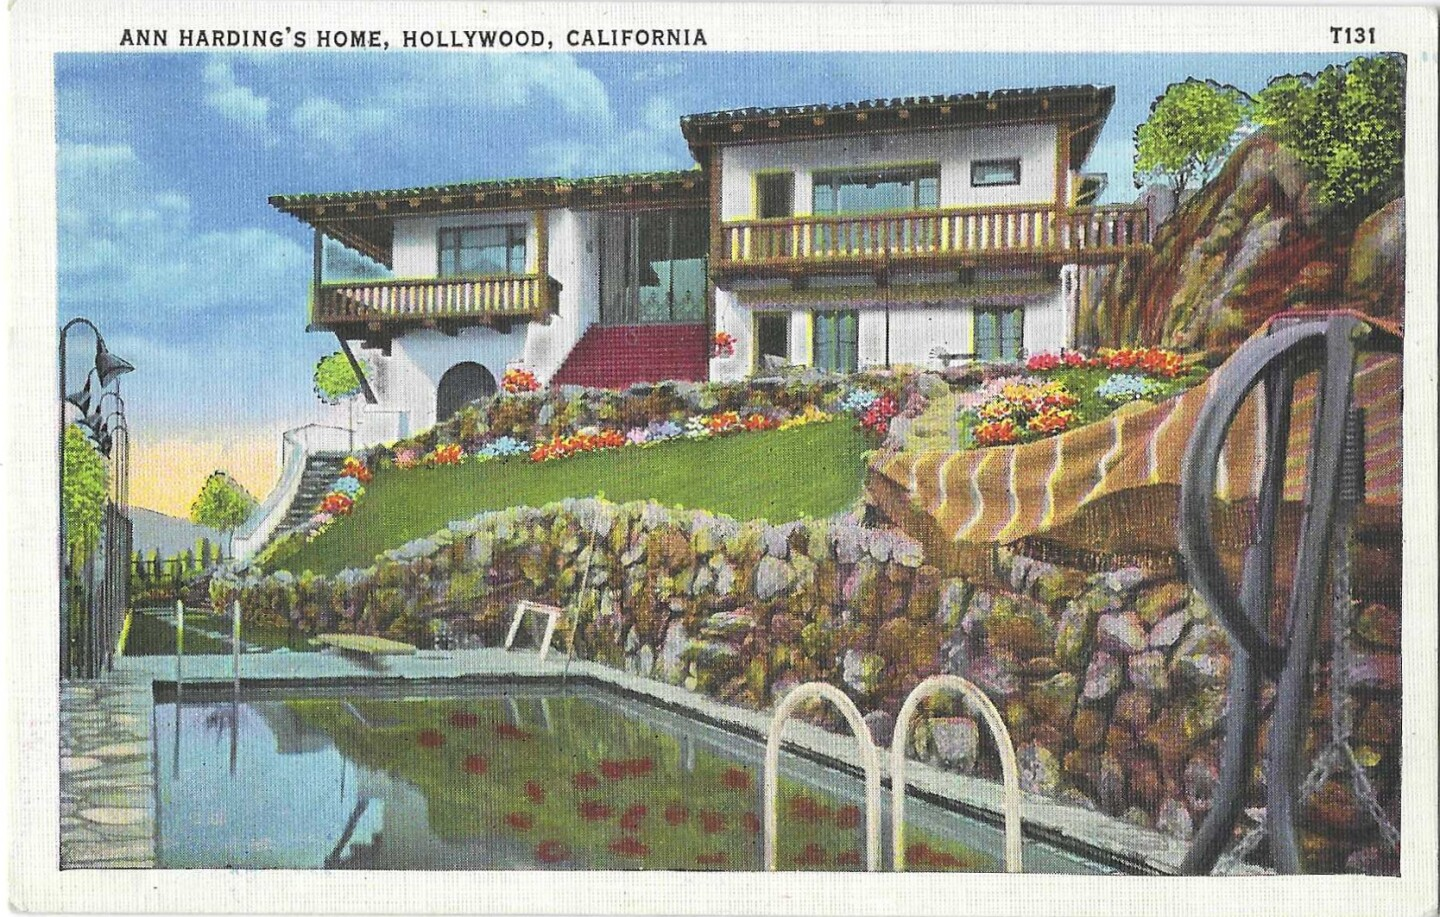 Vintage postcard shows the pool, grounds and home of Hollywood star Ann Harding